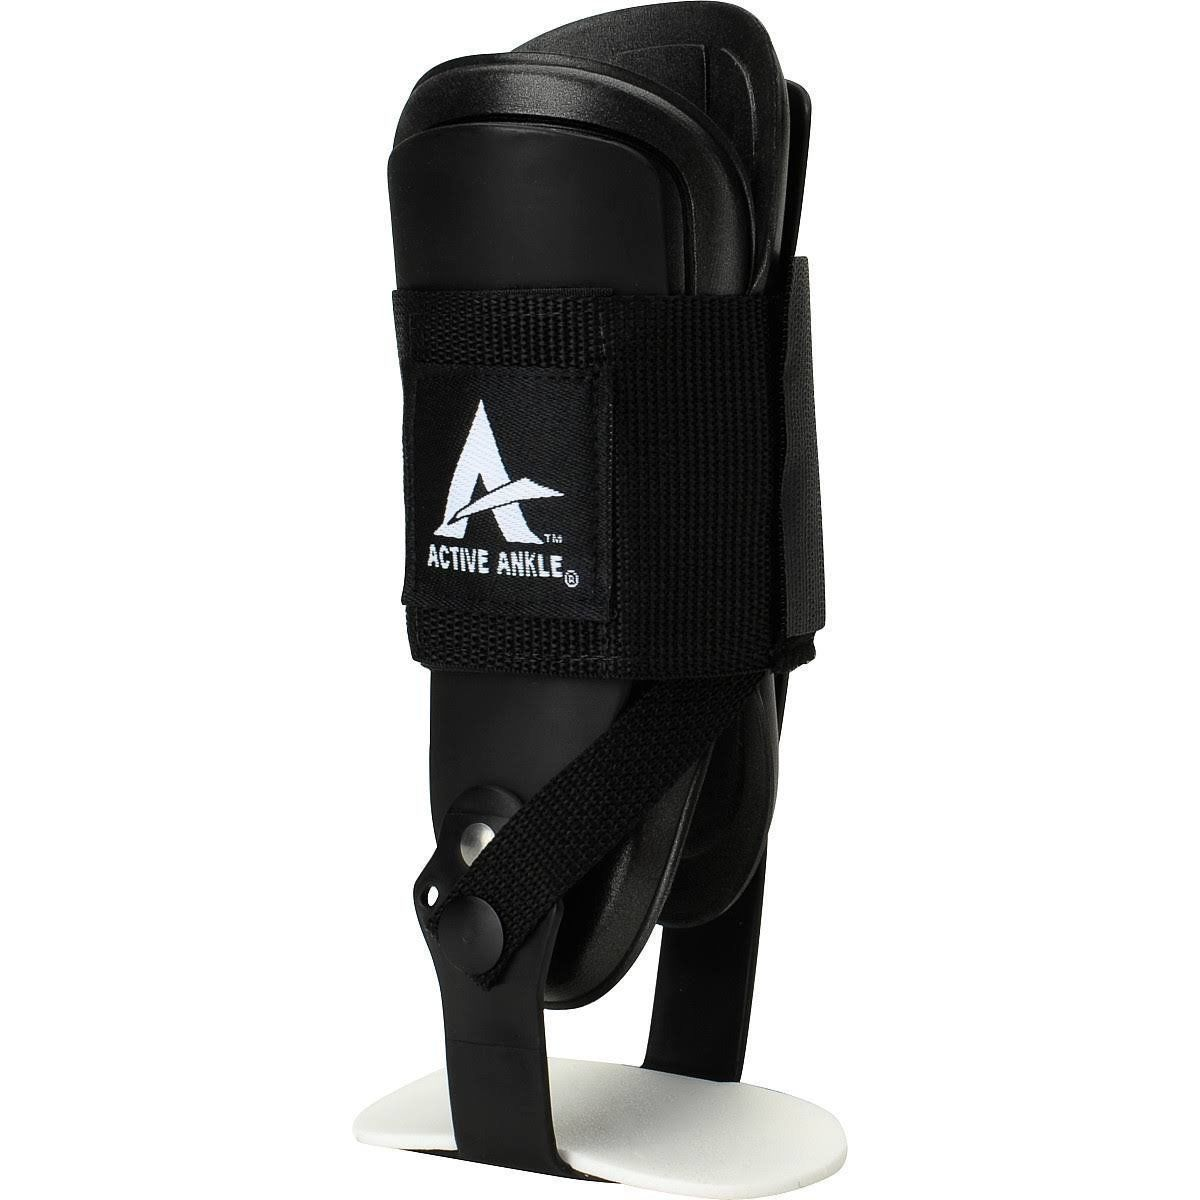 Support And Protective Gear 158919 T2 Active Ankle Brace Black Basketball Volleyball Softball Buy It Now Only 3 Ankle Braces Supportive Sports Medicine